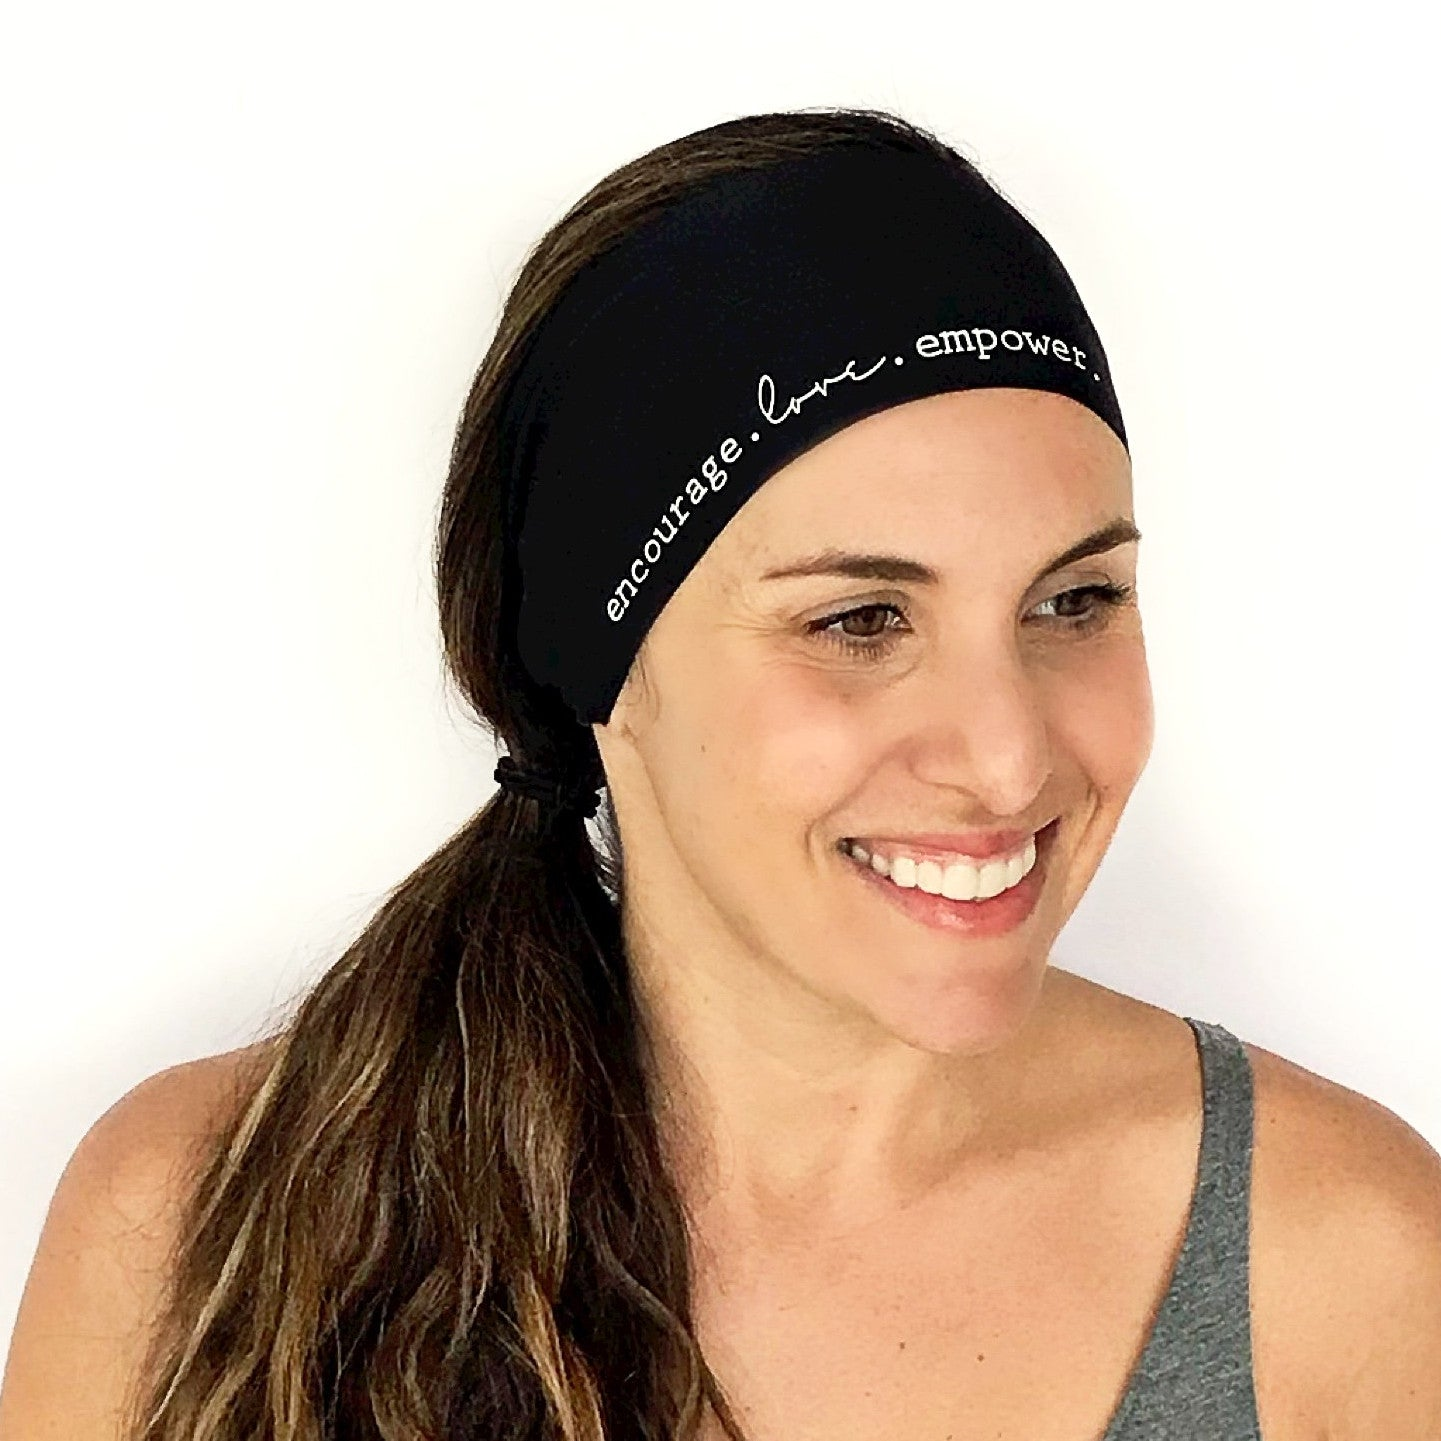 Encourage Love Empower Headband